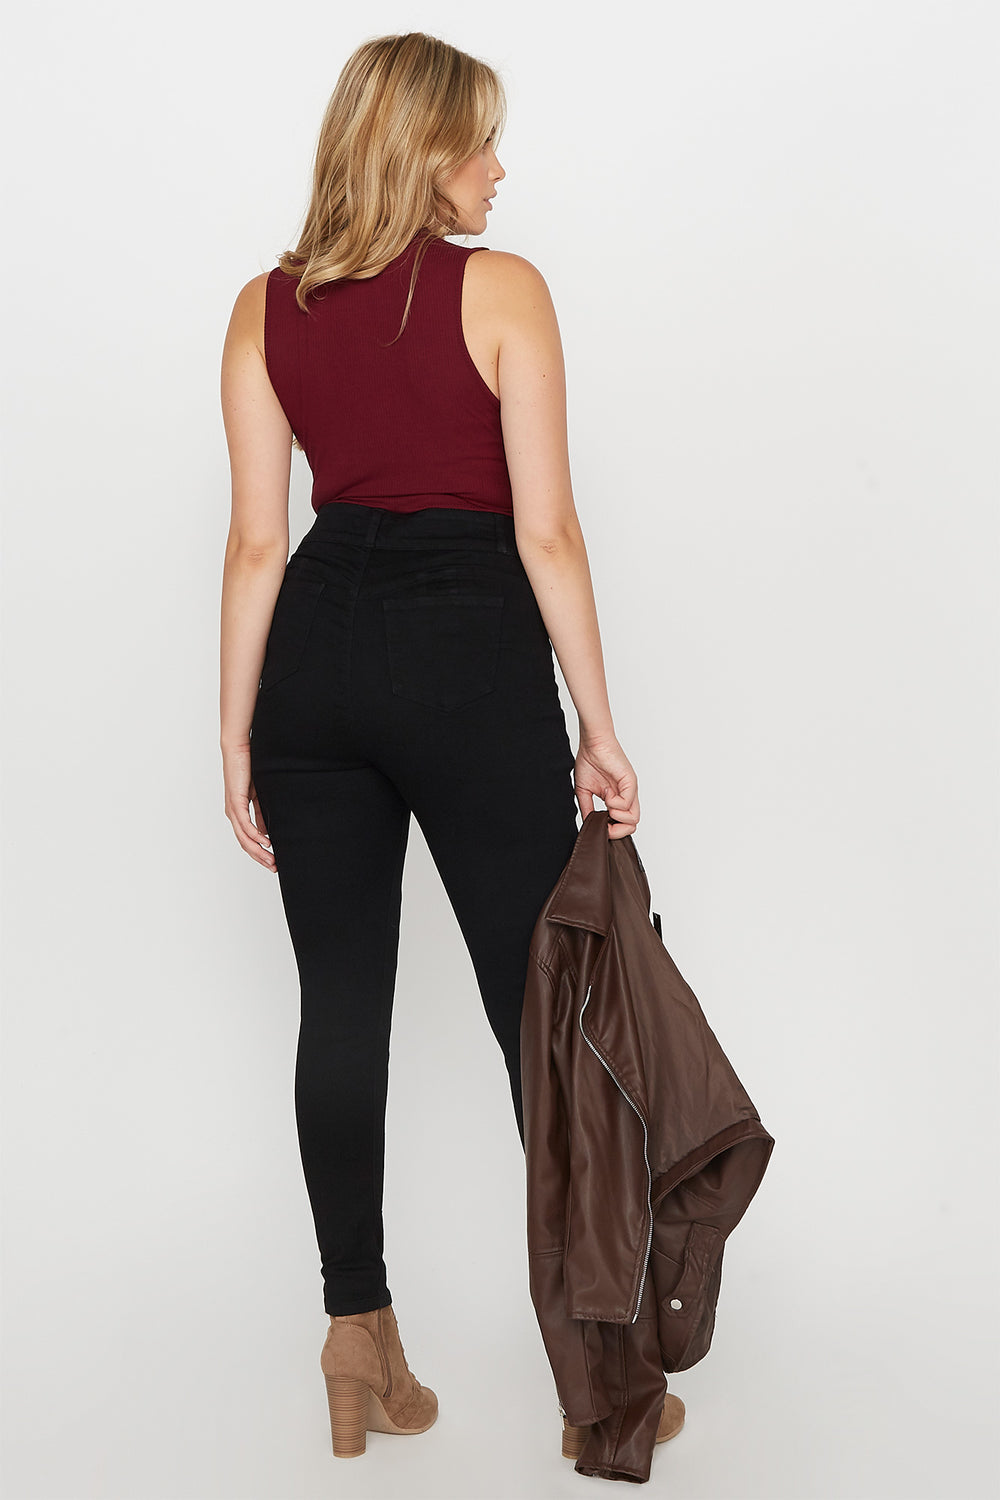 Plus Size Butt, I Love You 2-Tier High-Rise Push-Up Skinny Jean Black